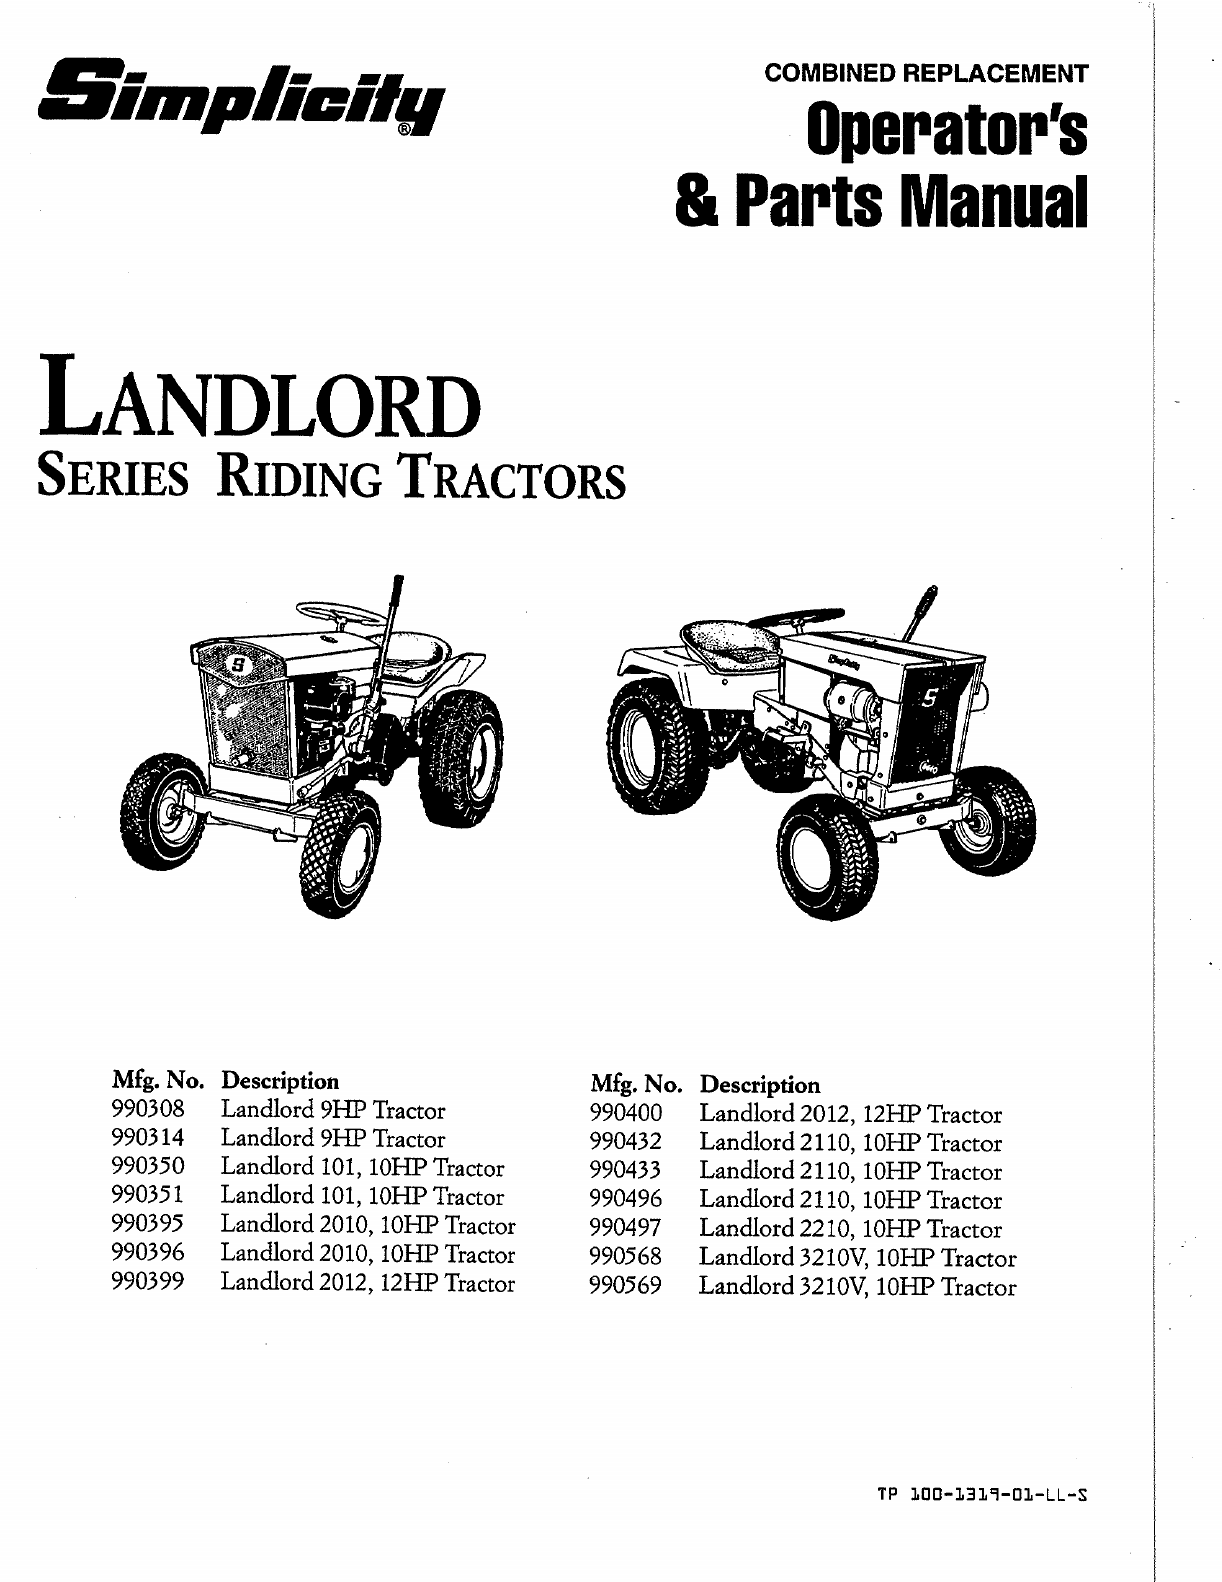 simplicity lawn mower 990400 user guide manualsonline com rh lawnandgarden manualsonline com Simplicity Regent Riding Mower Simplicity Mower Deck Belt Diagram